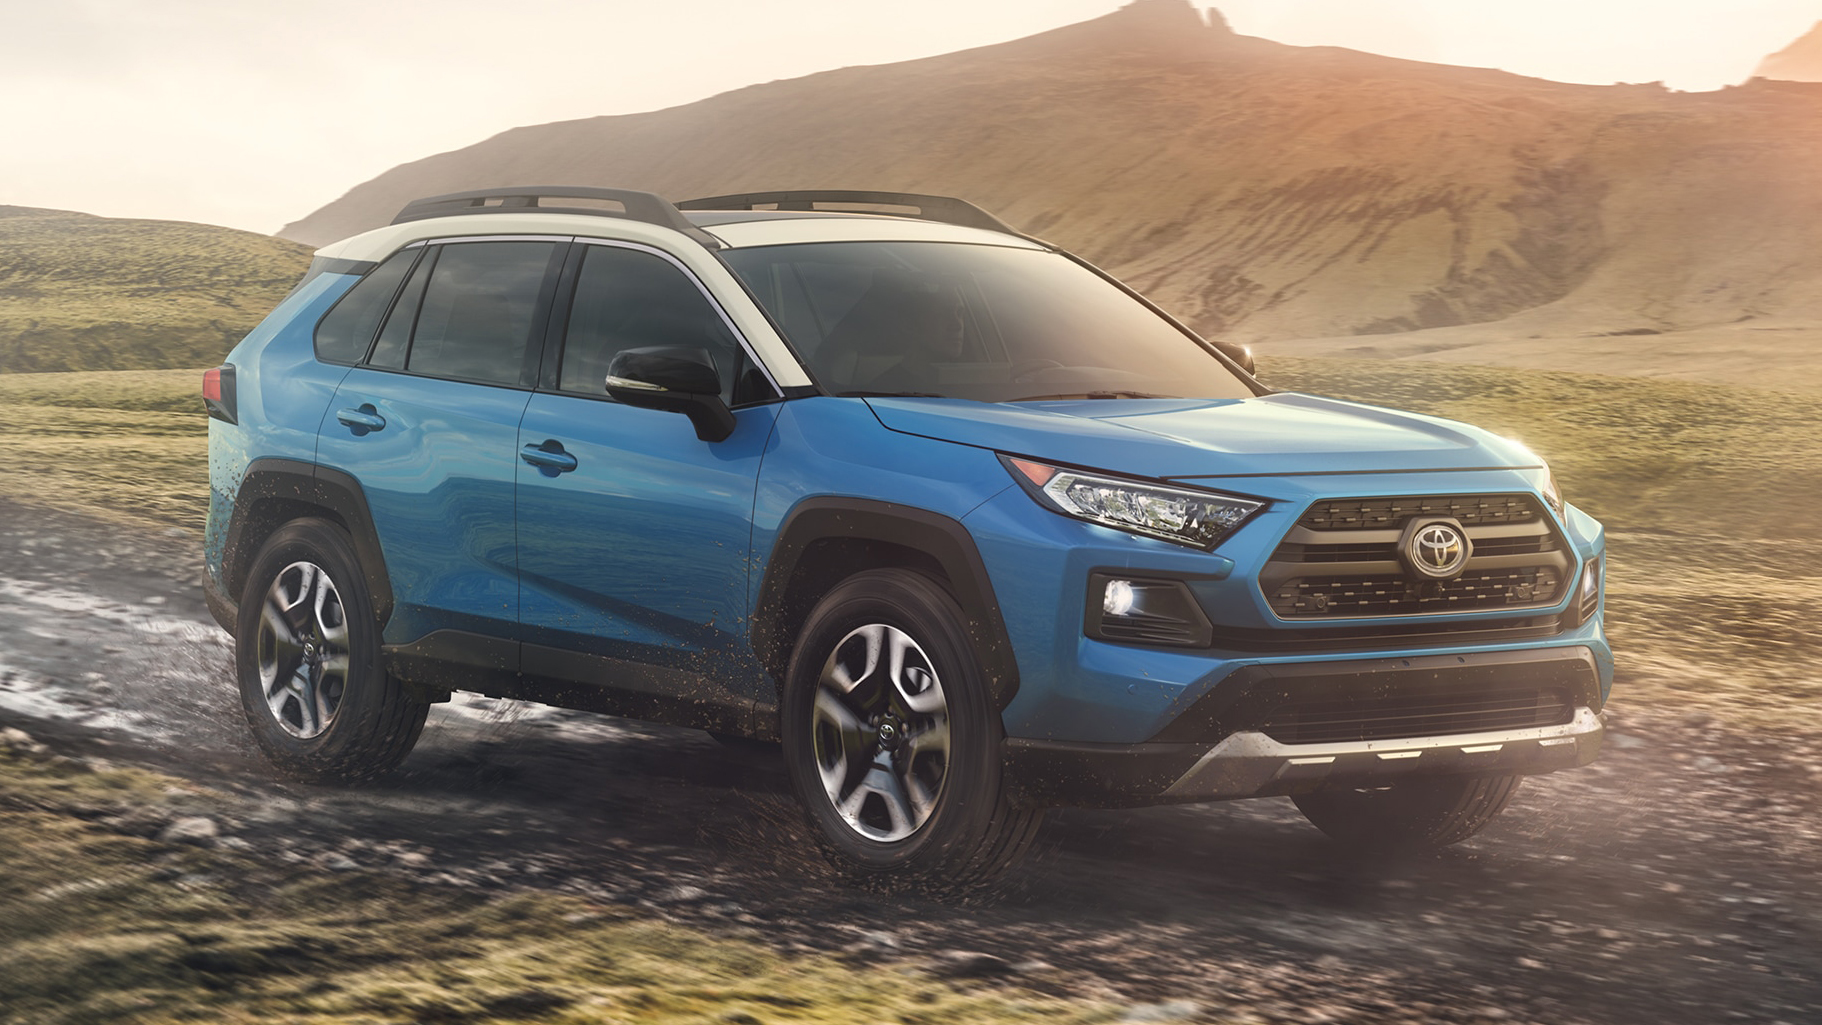 2019 Toyota Rav4 Page 9 Redflagdeals Com Forums